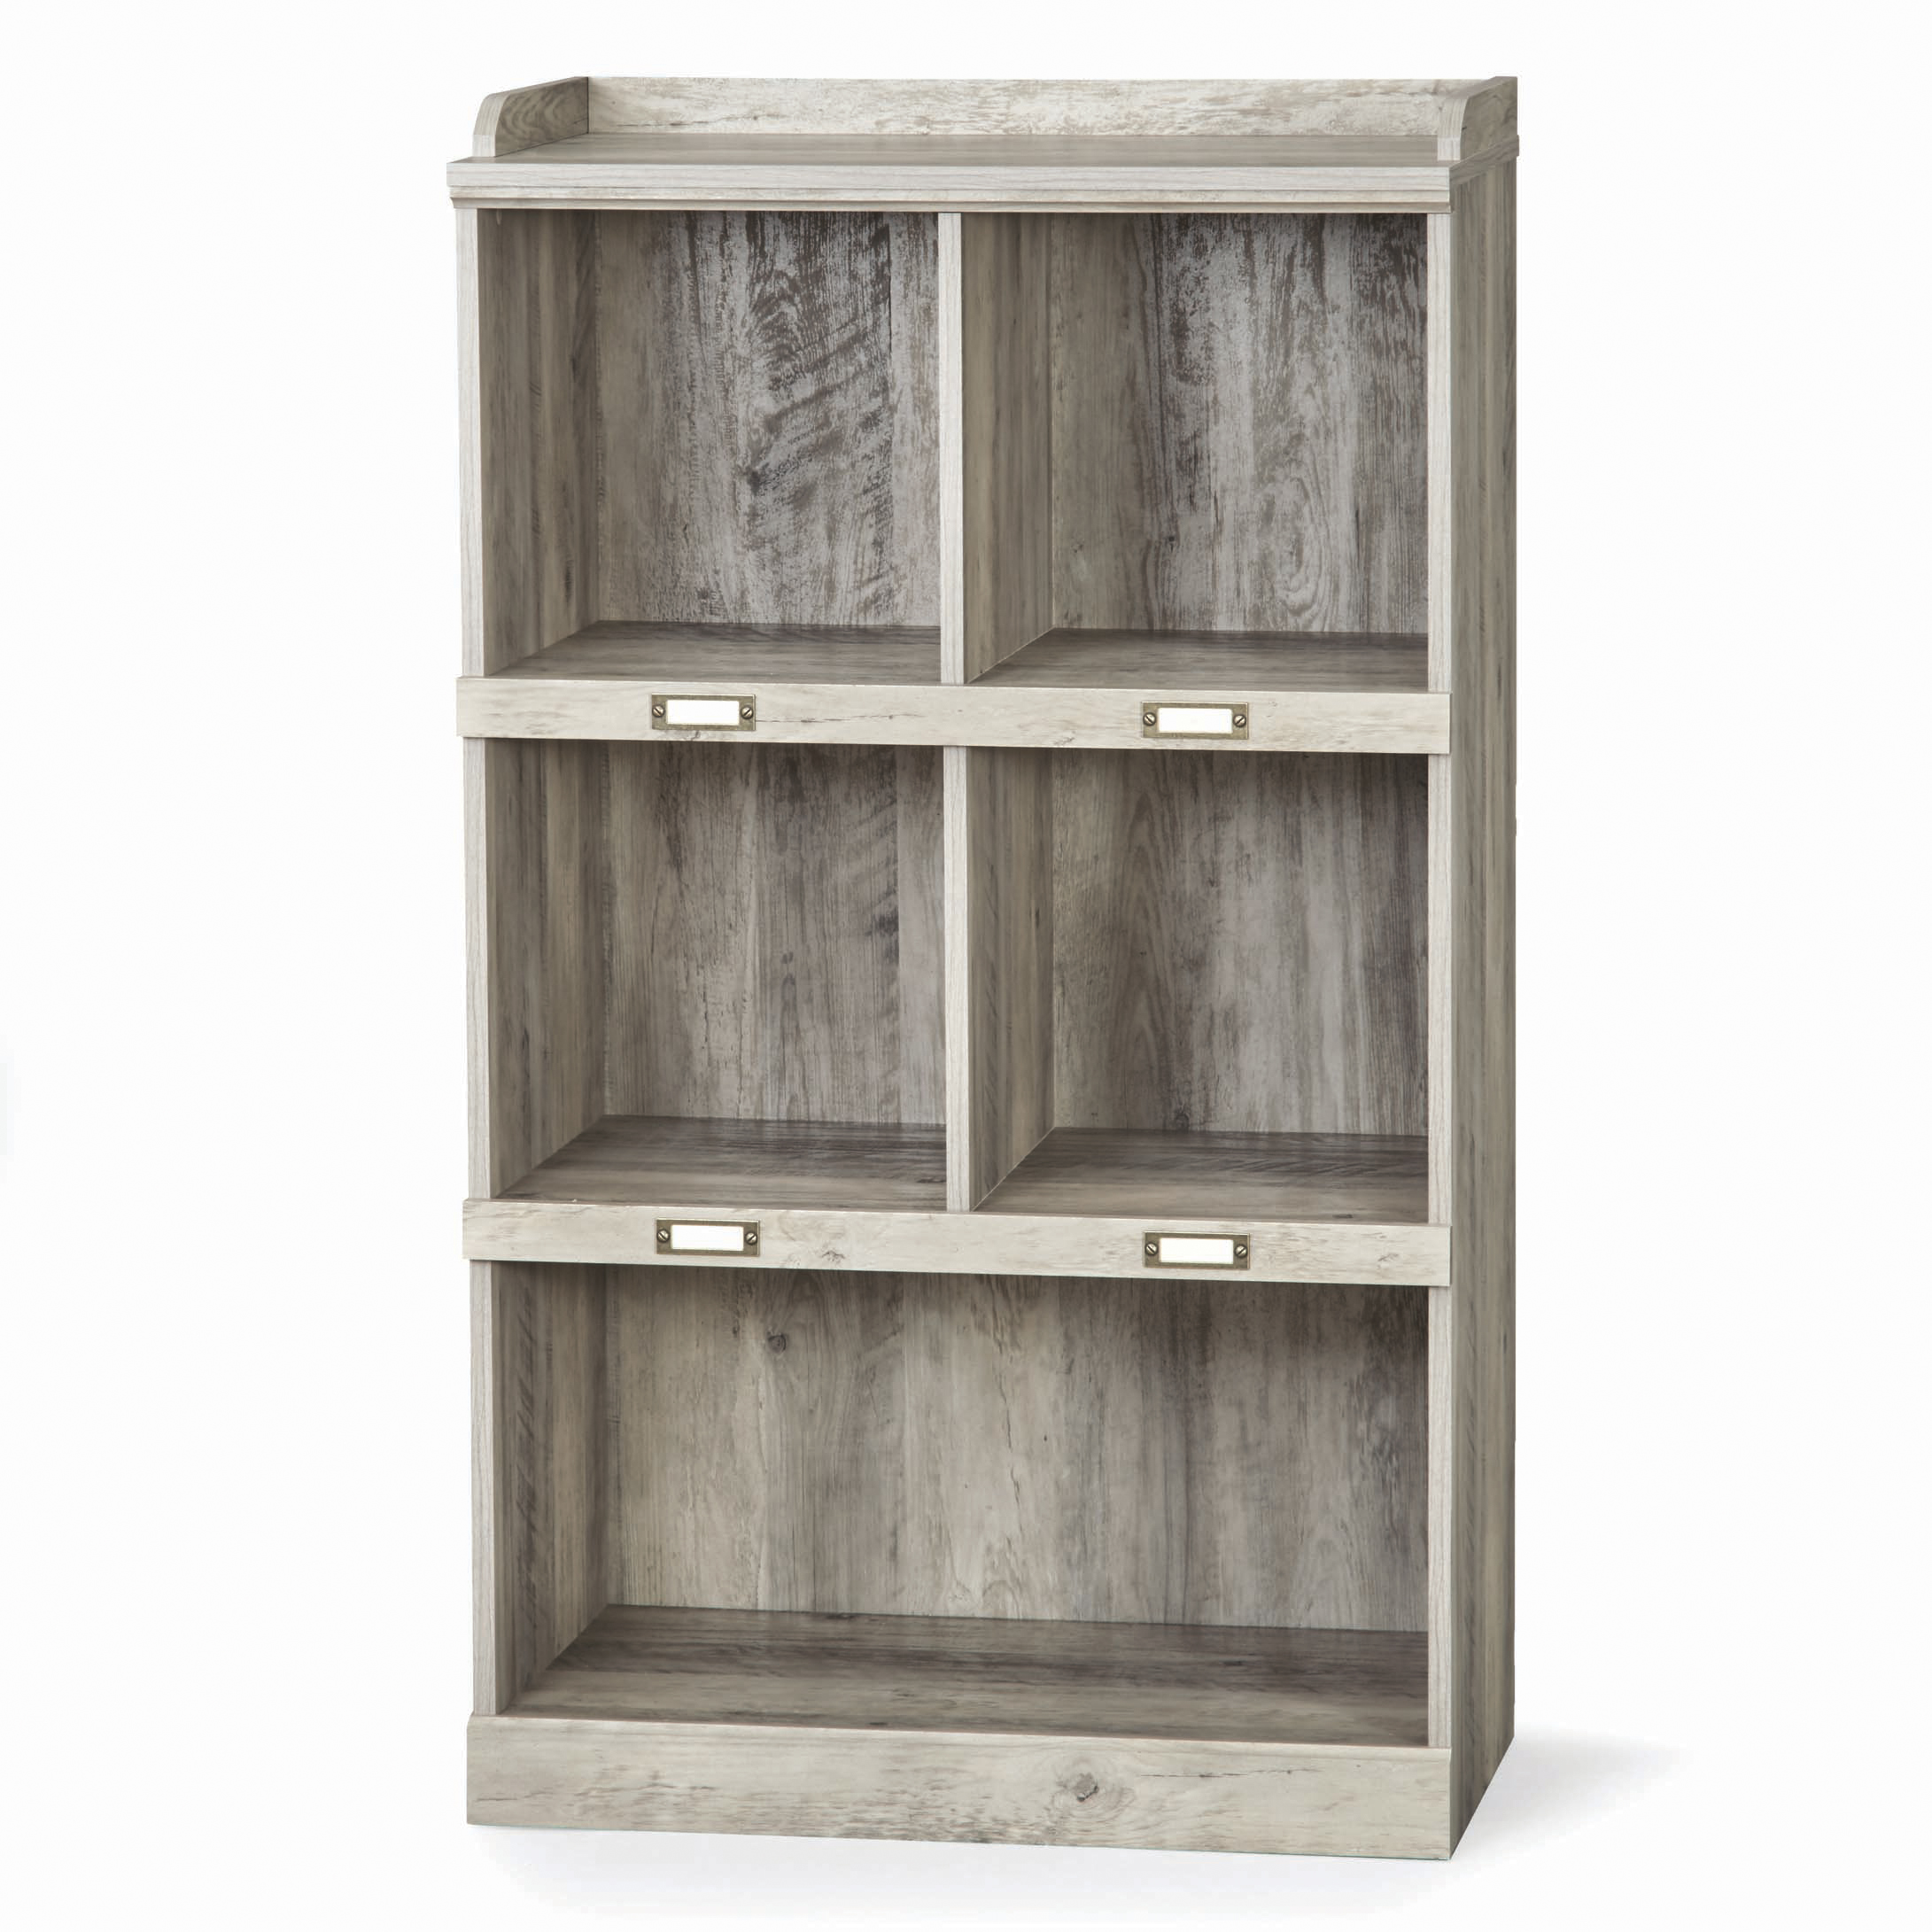 Better Homes U0026 Gardens Modern Farmhouse 5 Cube Organizer With Name Plates,  Rustic Gray